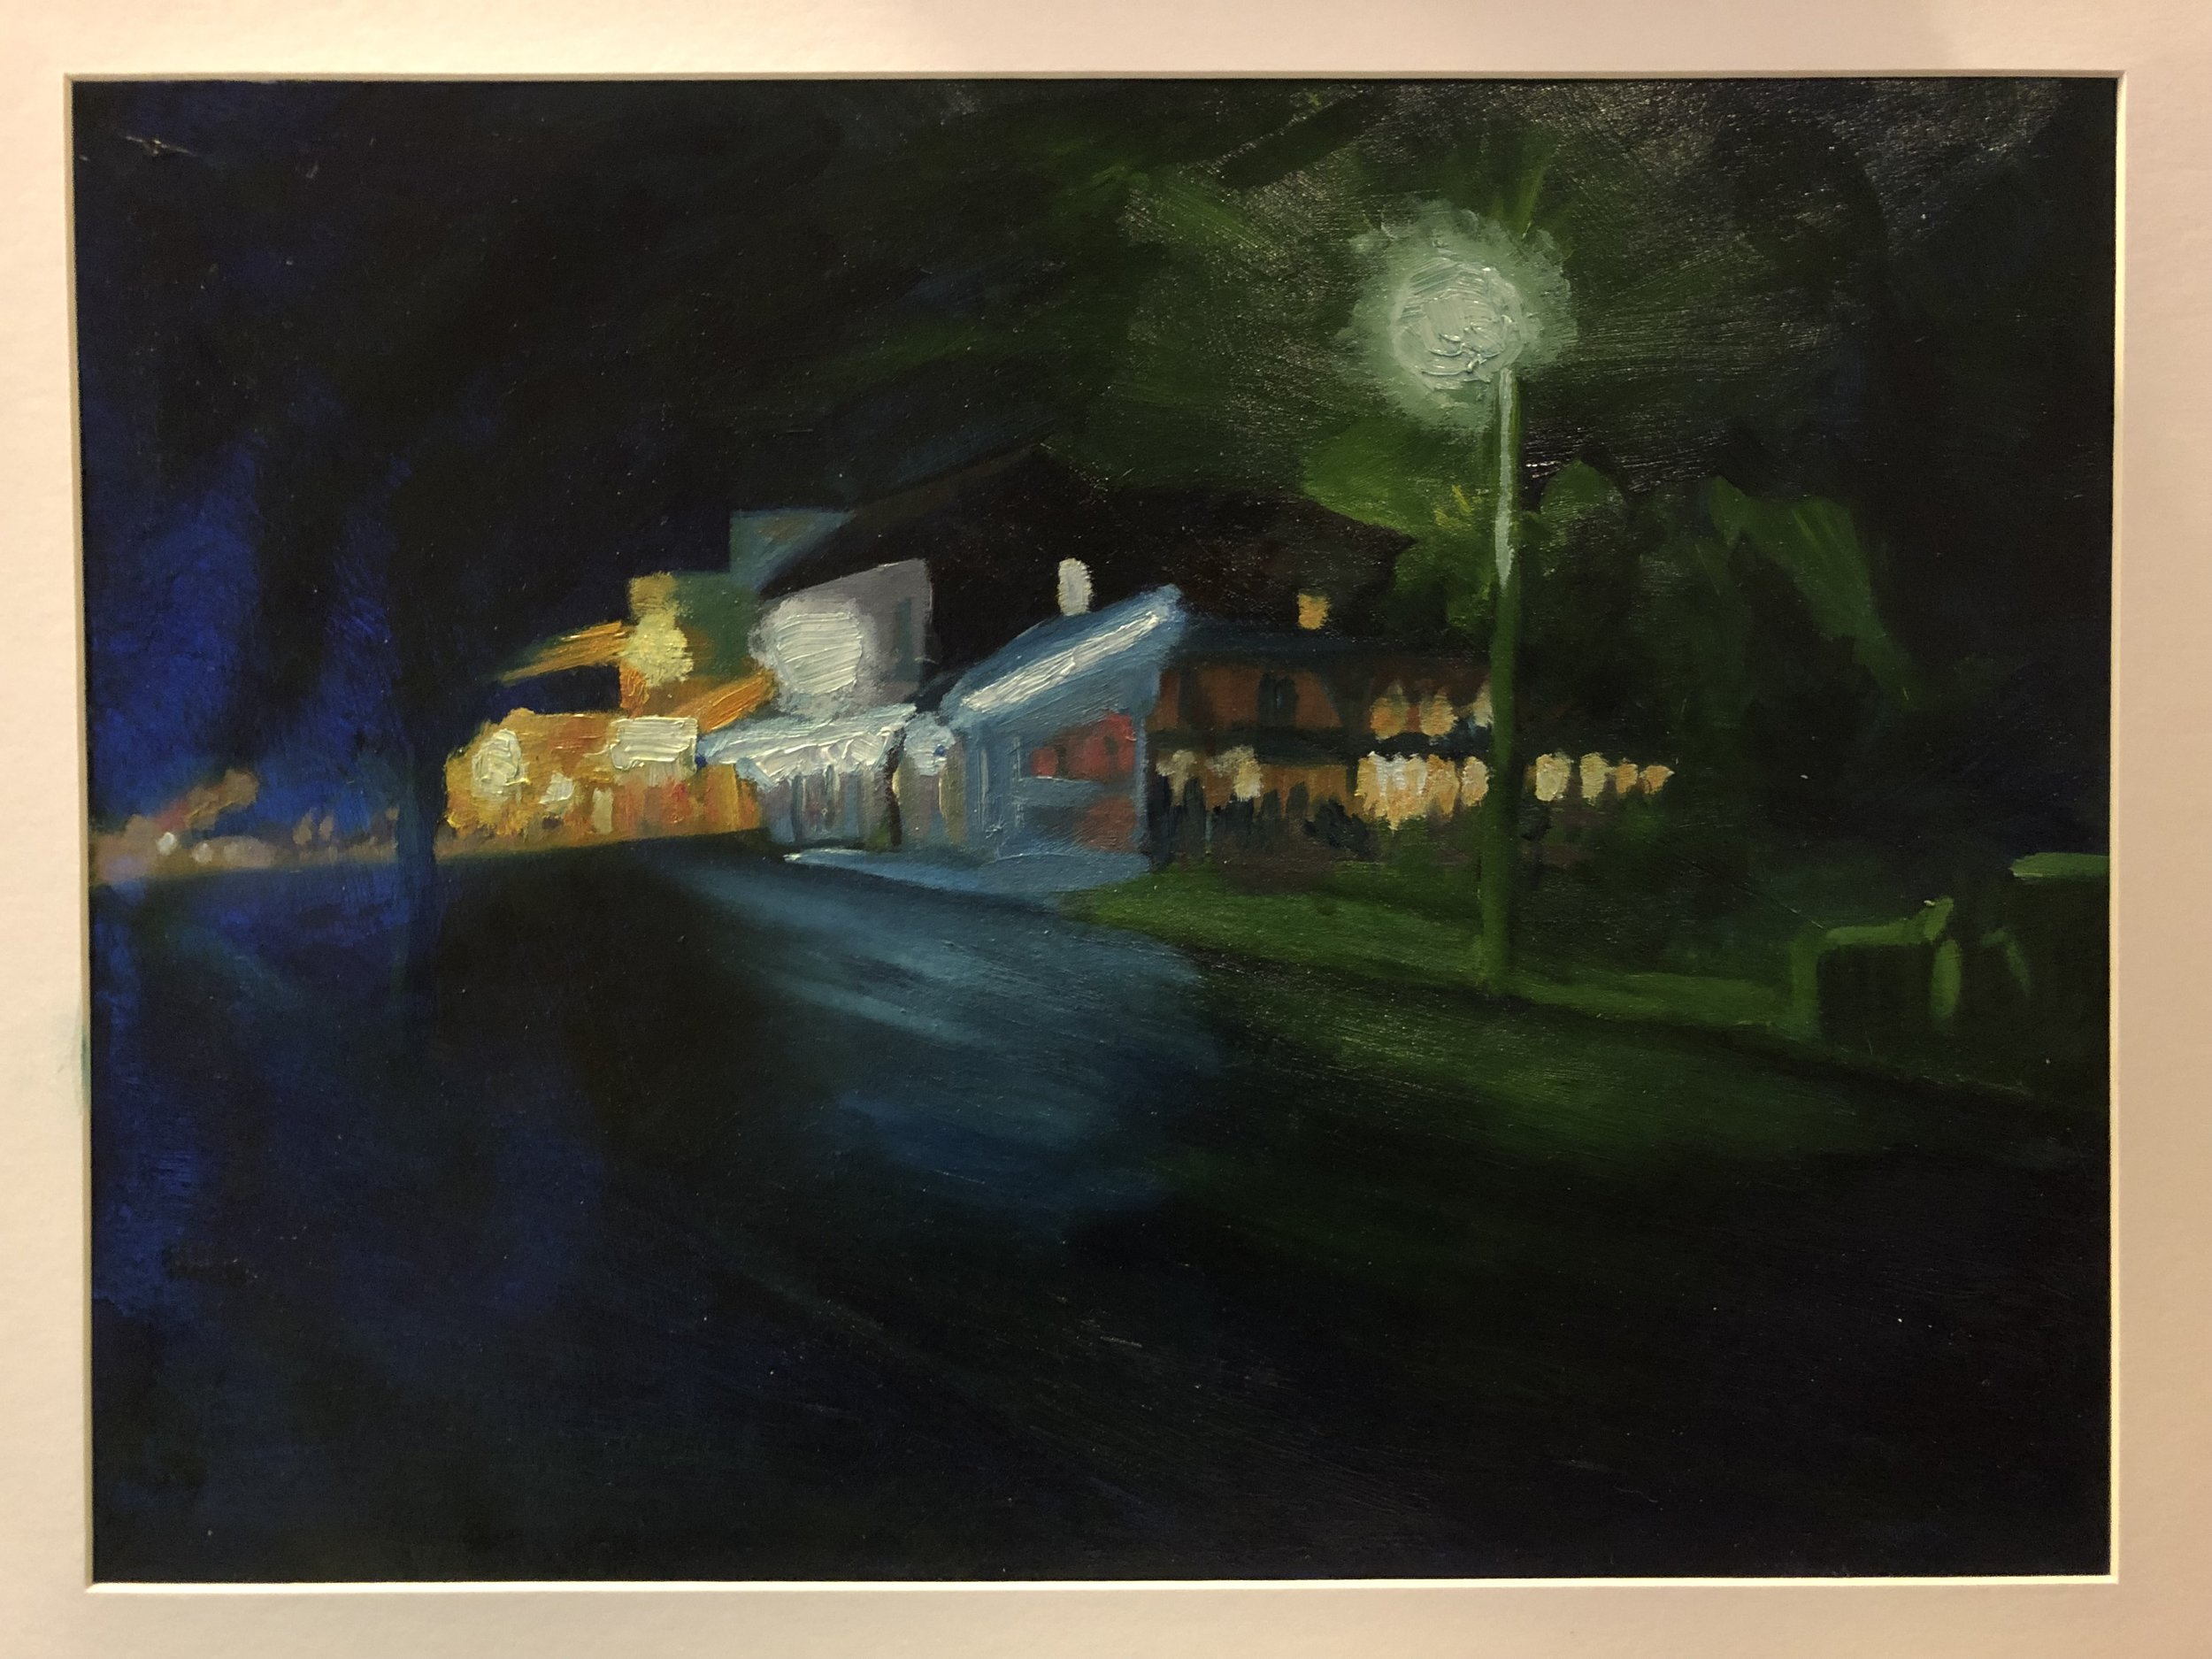 Patrick Mavety  Wicko Pub  2019 oil on cotton paper 43 x 53cm mounted SOLD